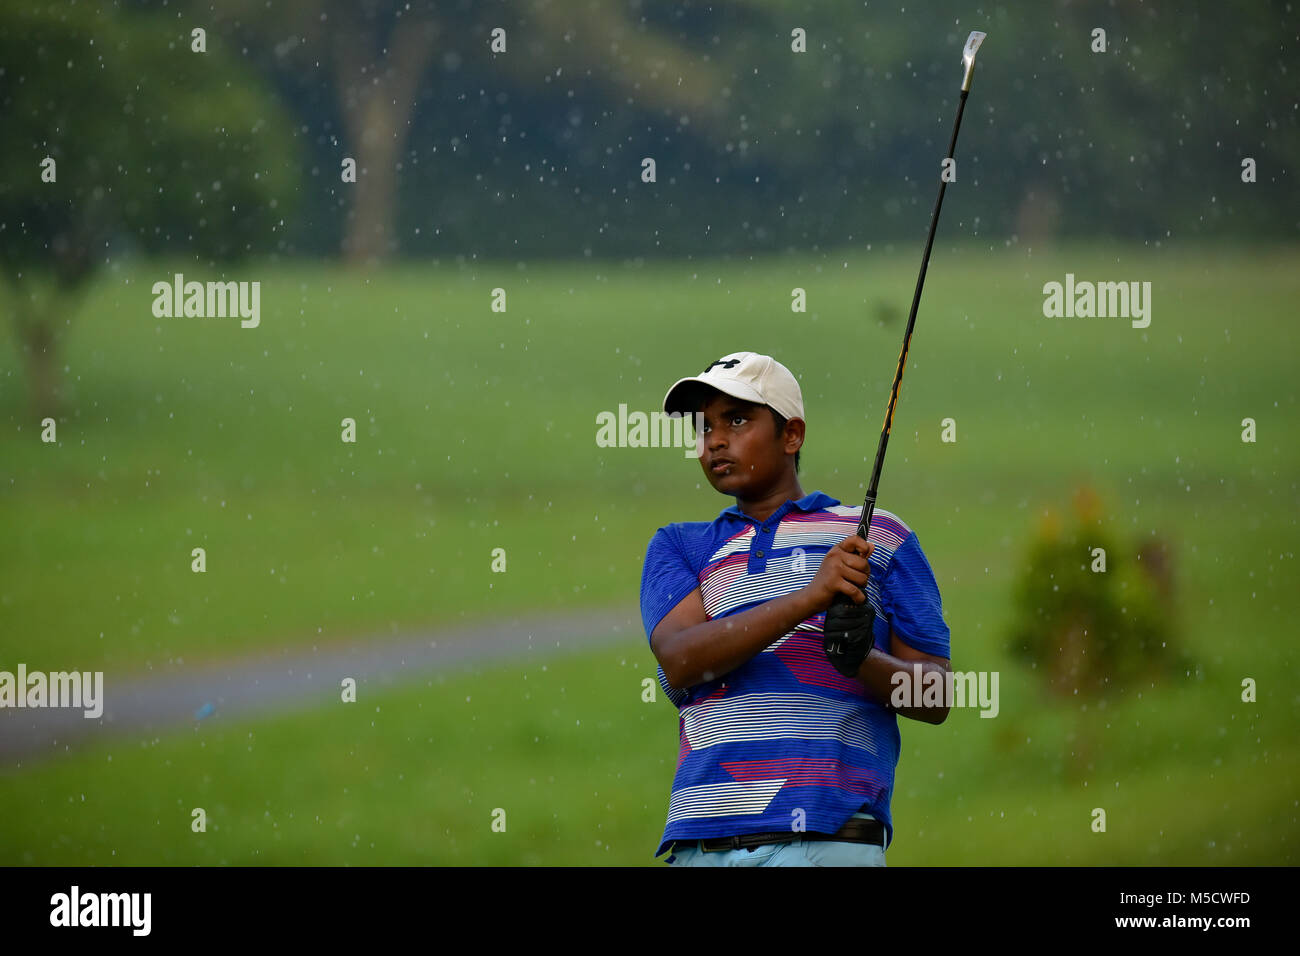 Danau, UKM Bangi - FEBRUARY 10: Dylan Alvin Augustine watches his tee shot on the 16th hole during Round One of - Stock Image